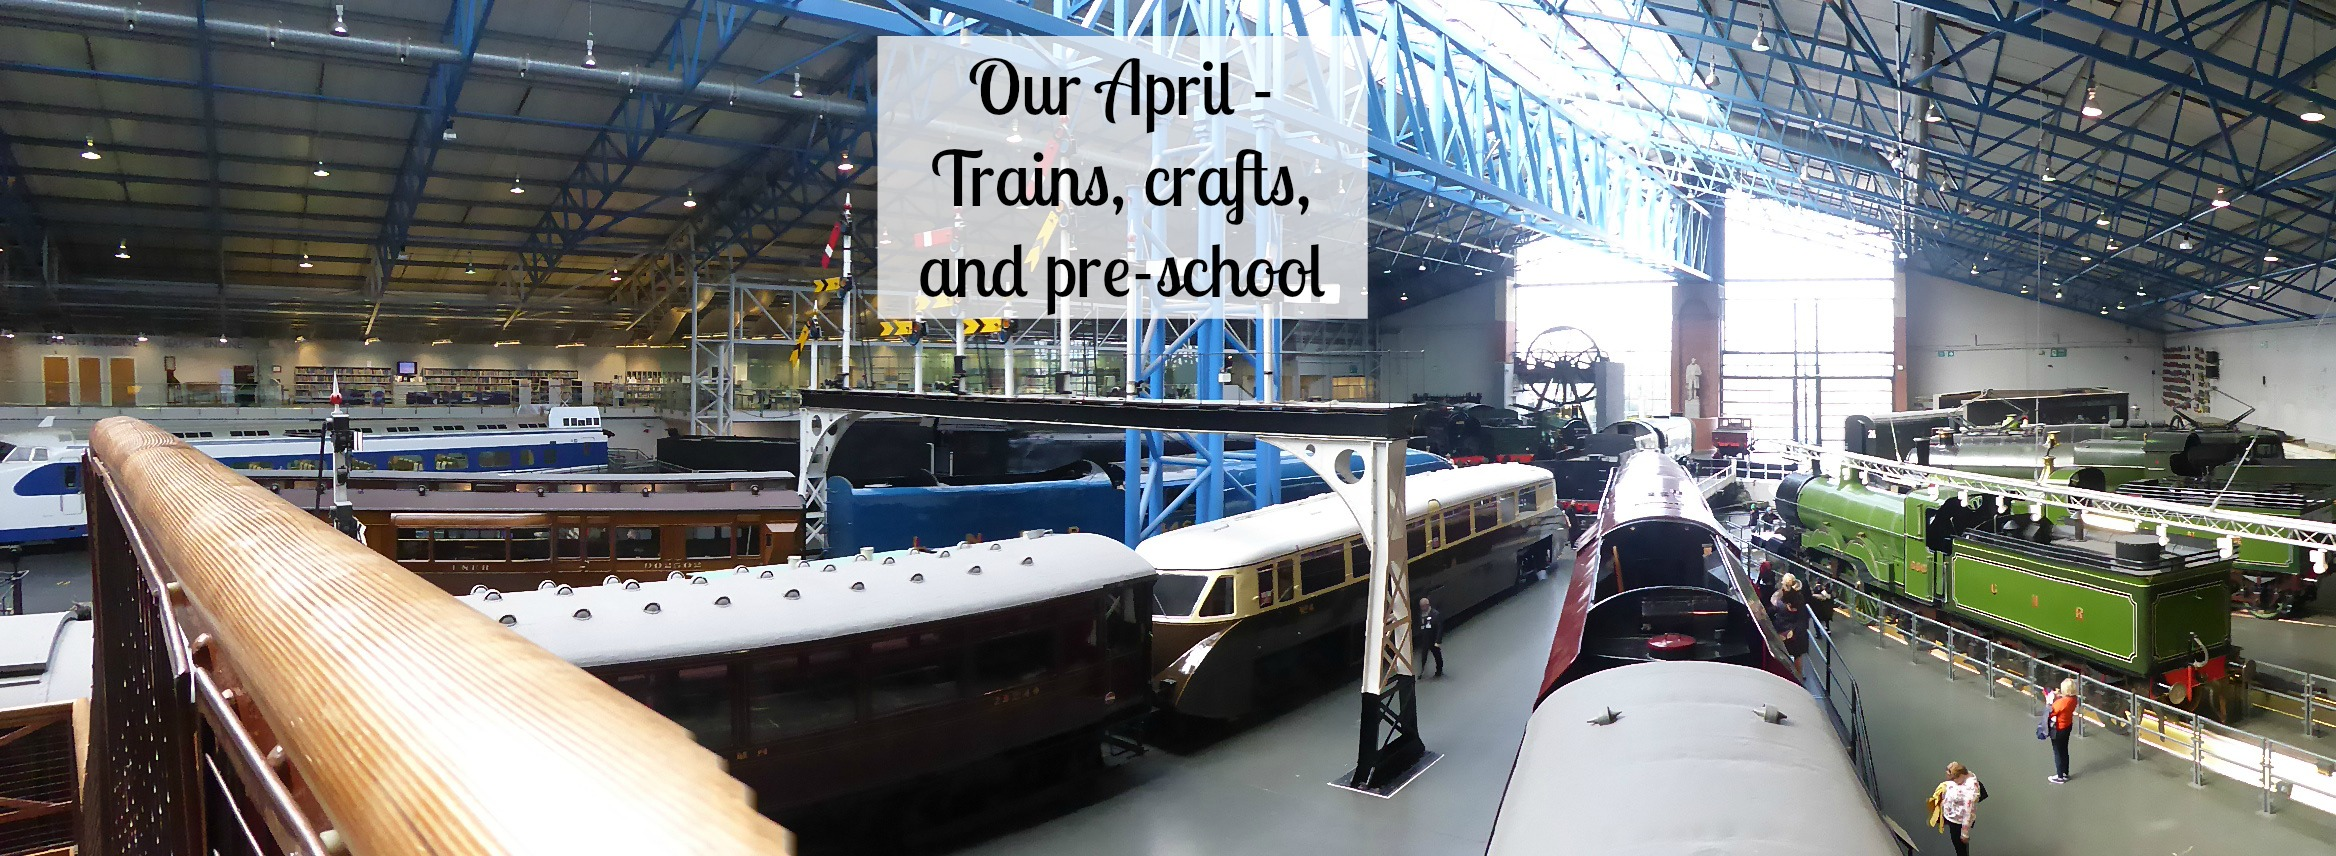 Our April - trains, crafts, pre school